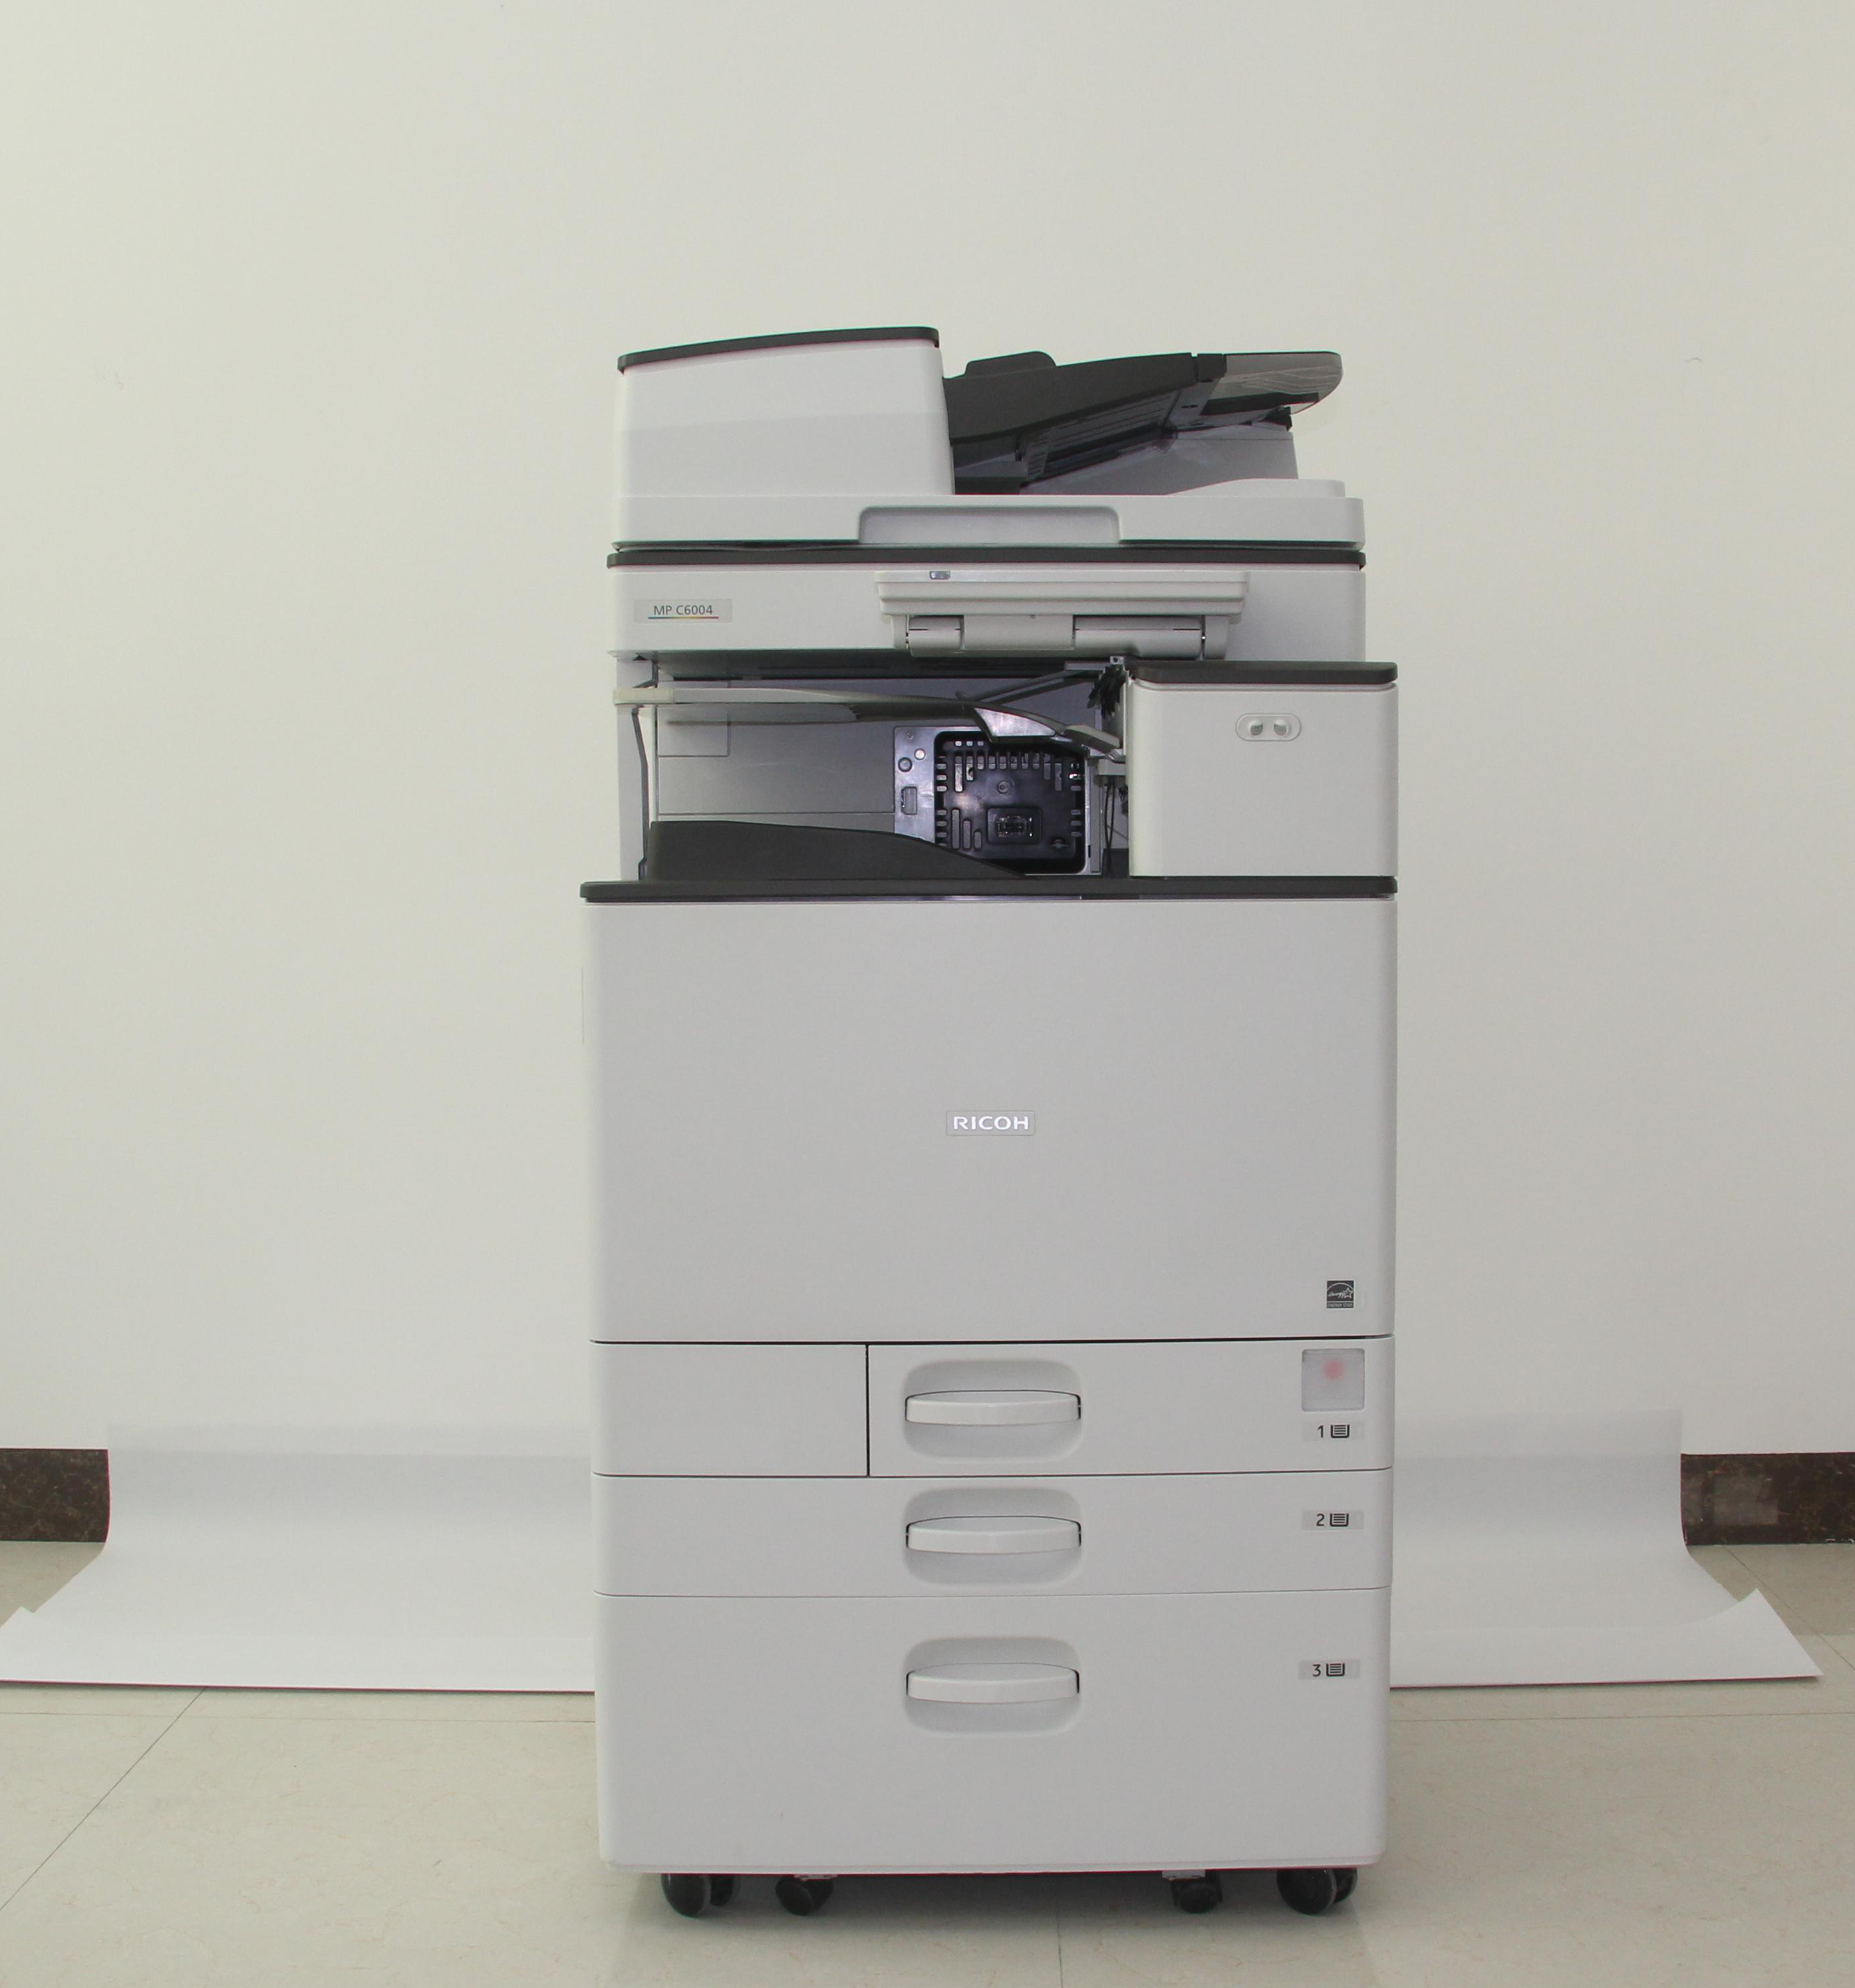 Hot sales Color photocopying machines and digital printing MP C4504EX supports Apple system Used photocopiers for RICOH